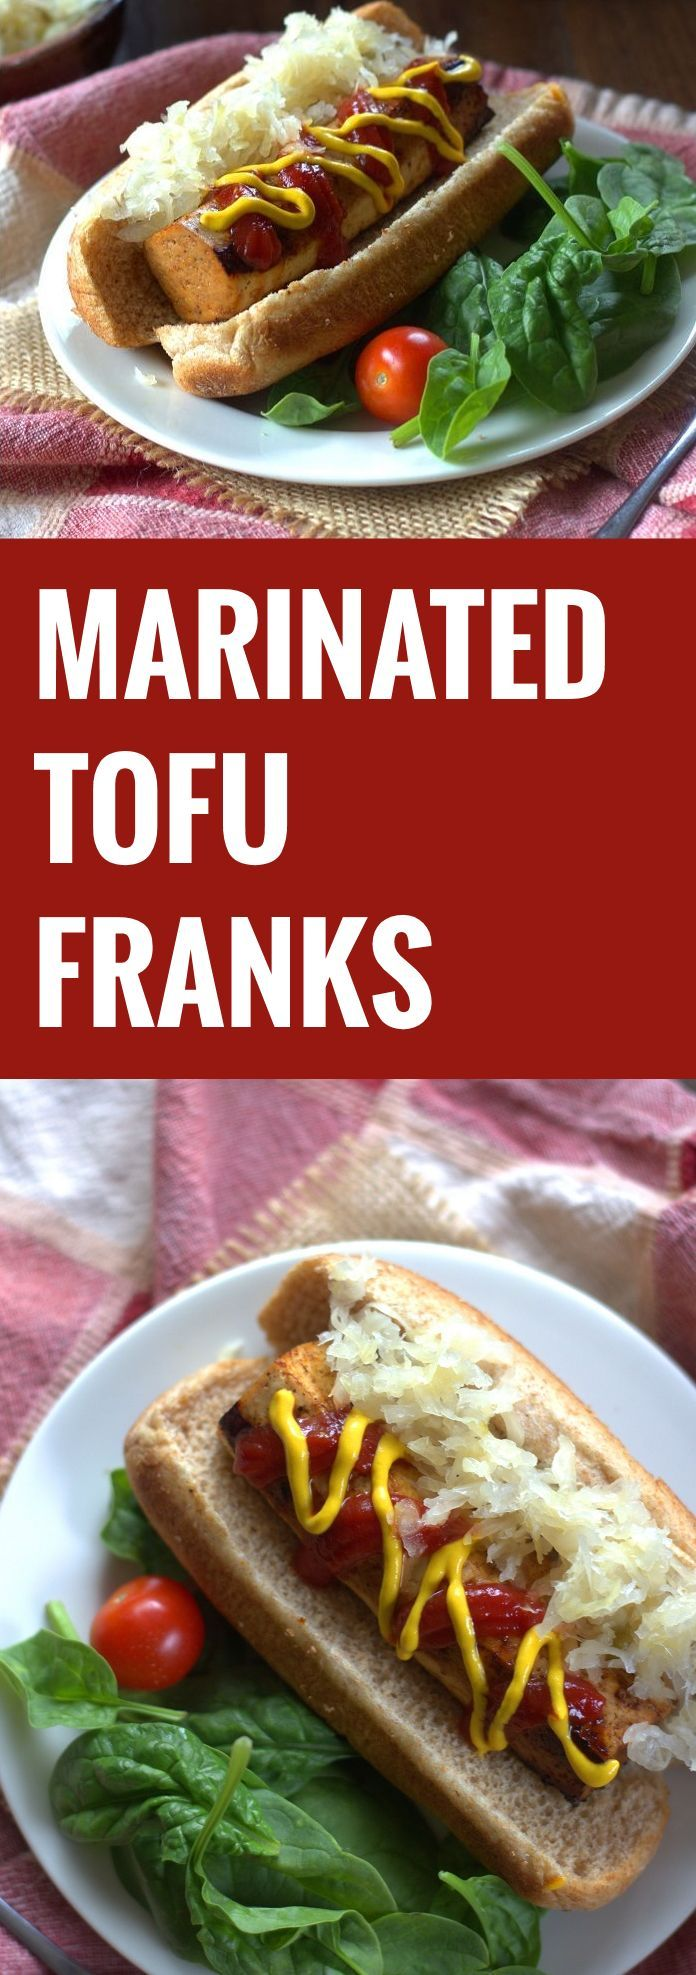 """Marinated Tofu Franks----hot dogs are the only """"meat"""" I miss! Can't wait to try this!"""